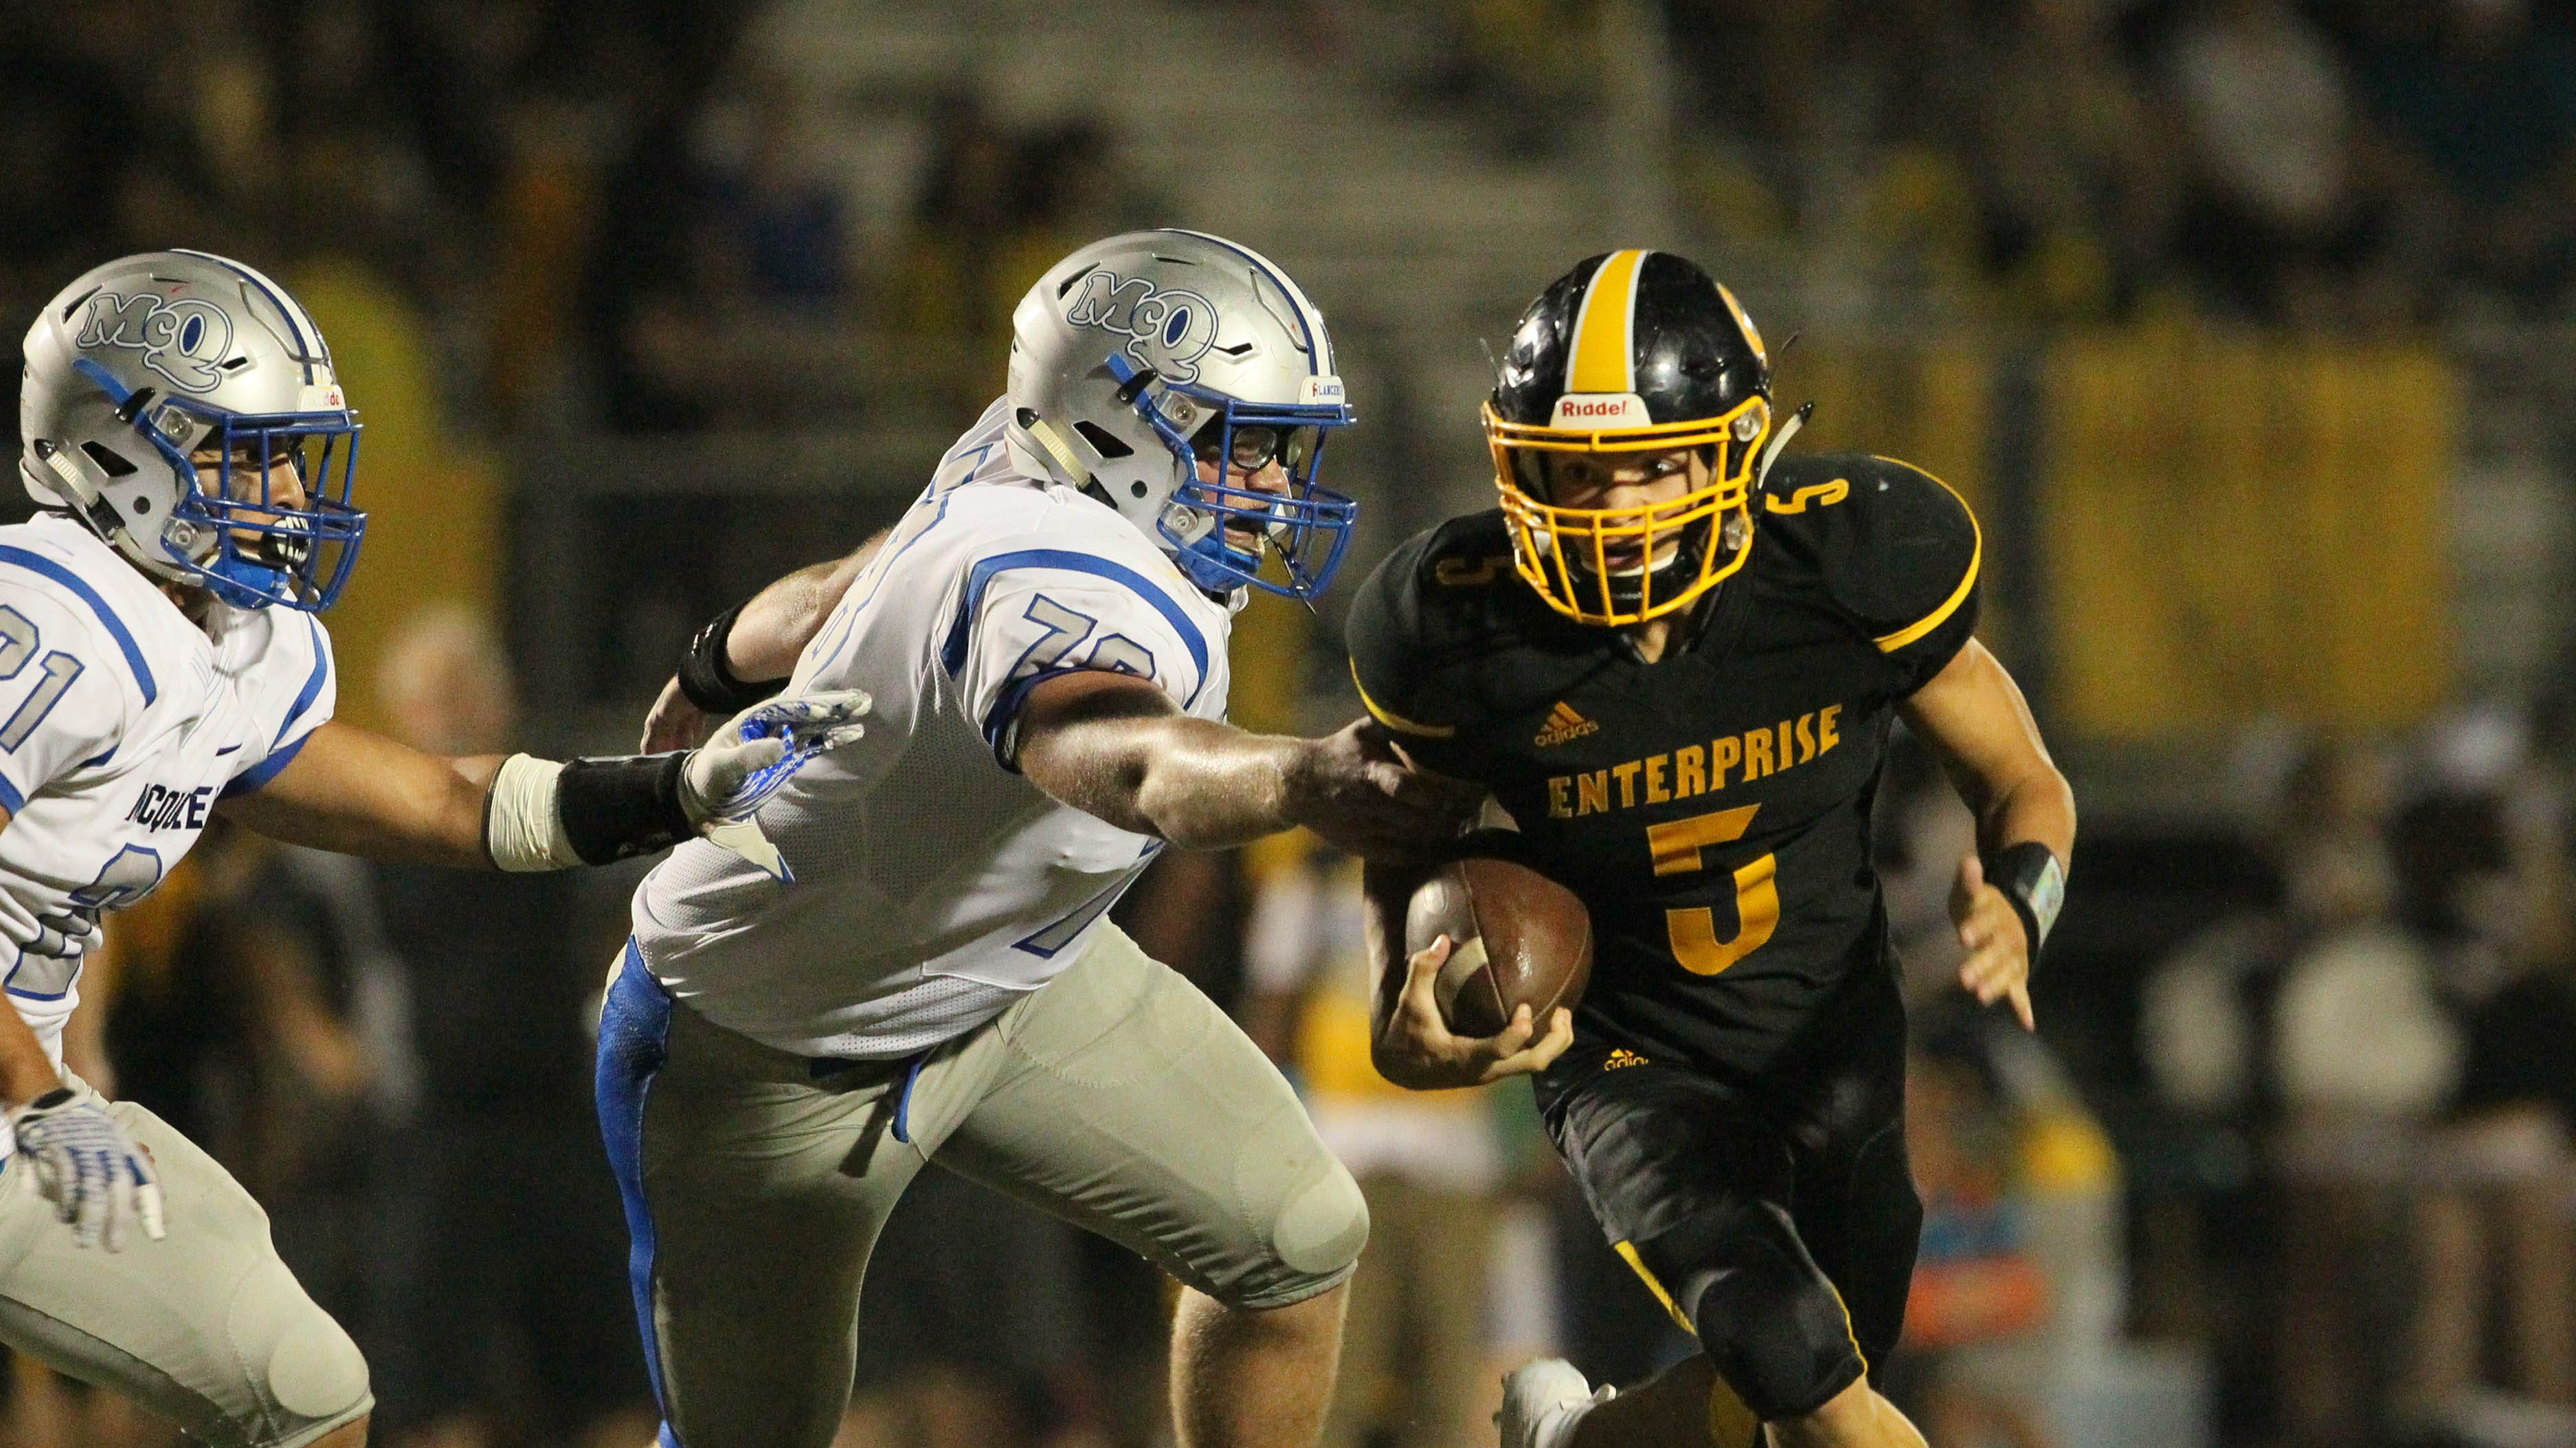 Enterprise running back Anthony Norman (5) runs in the Hornets' season opener against McQueen. The Hornets face Foothill on Friday.